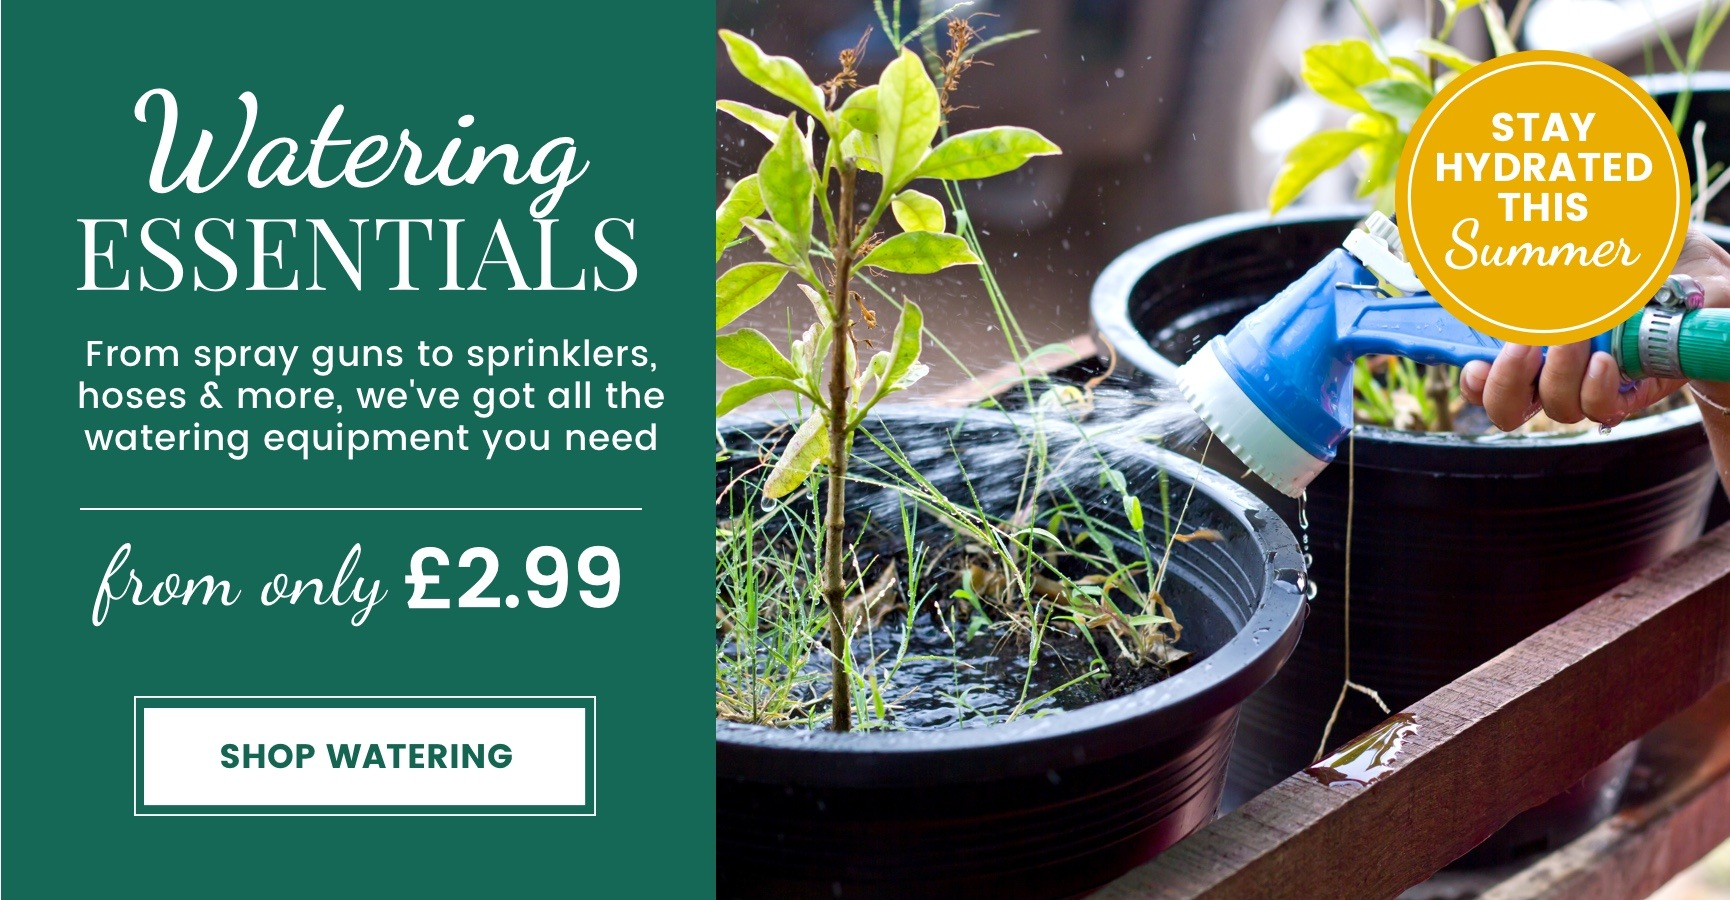 Watering Essentials